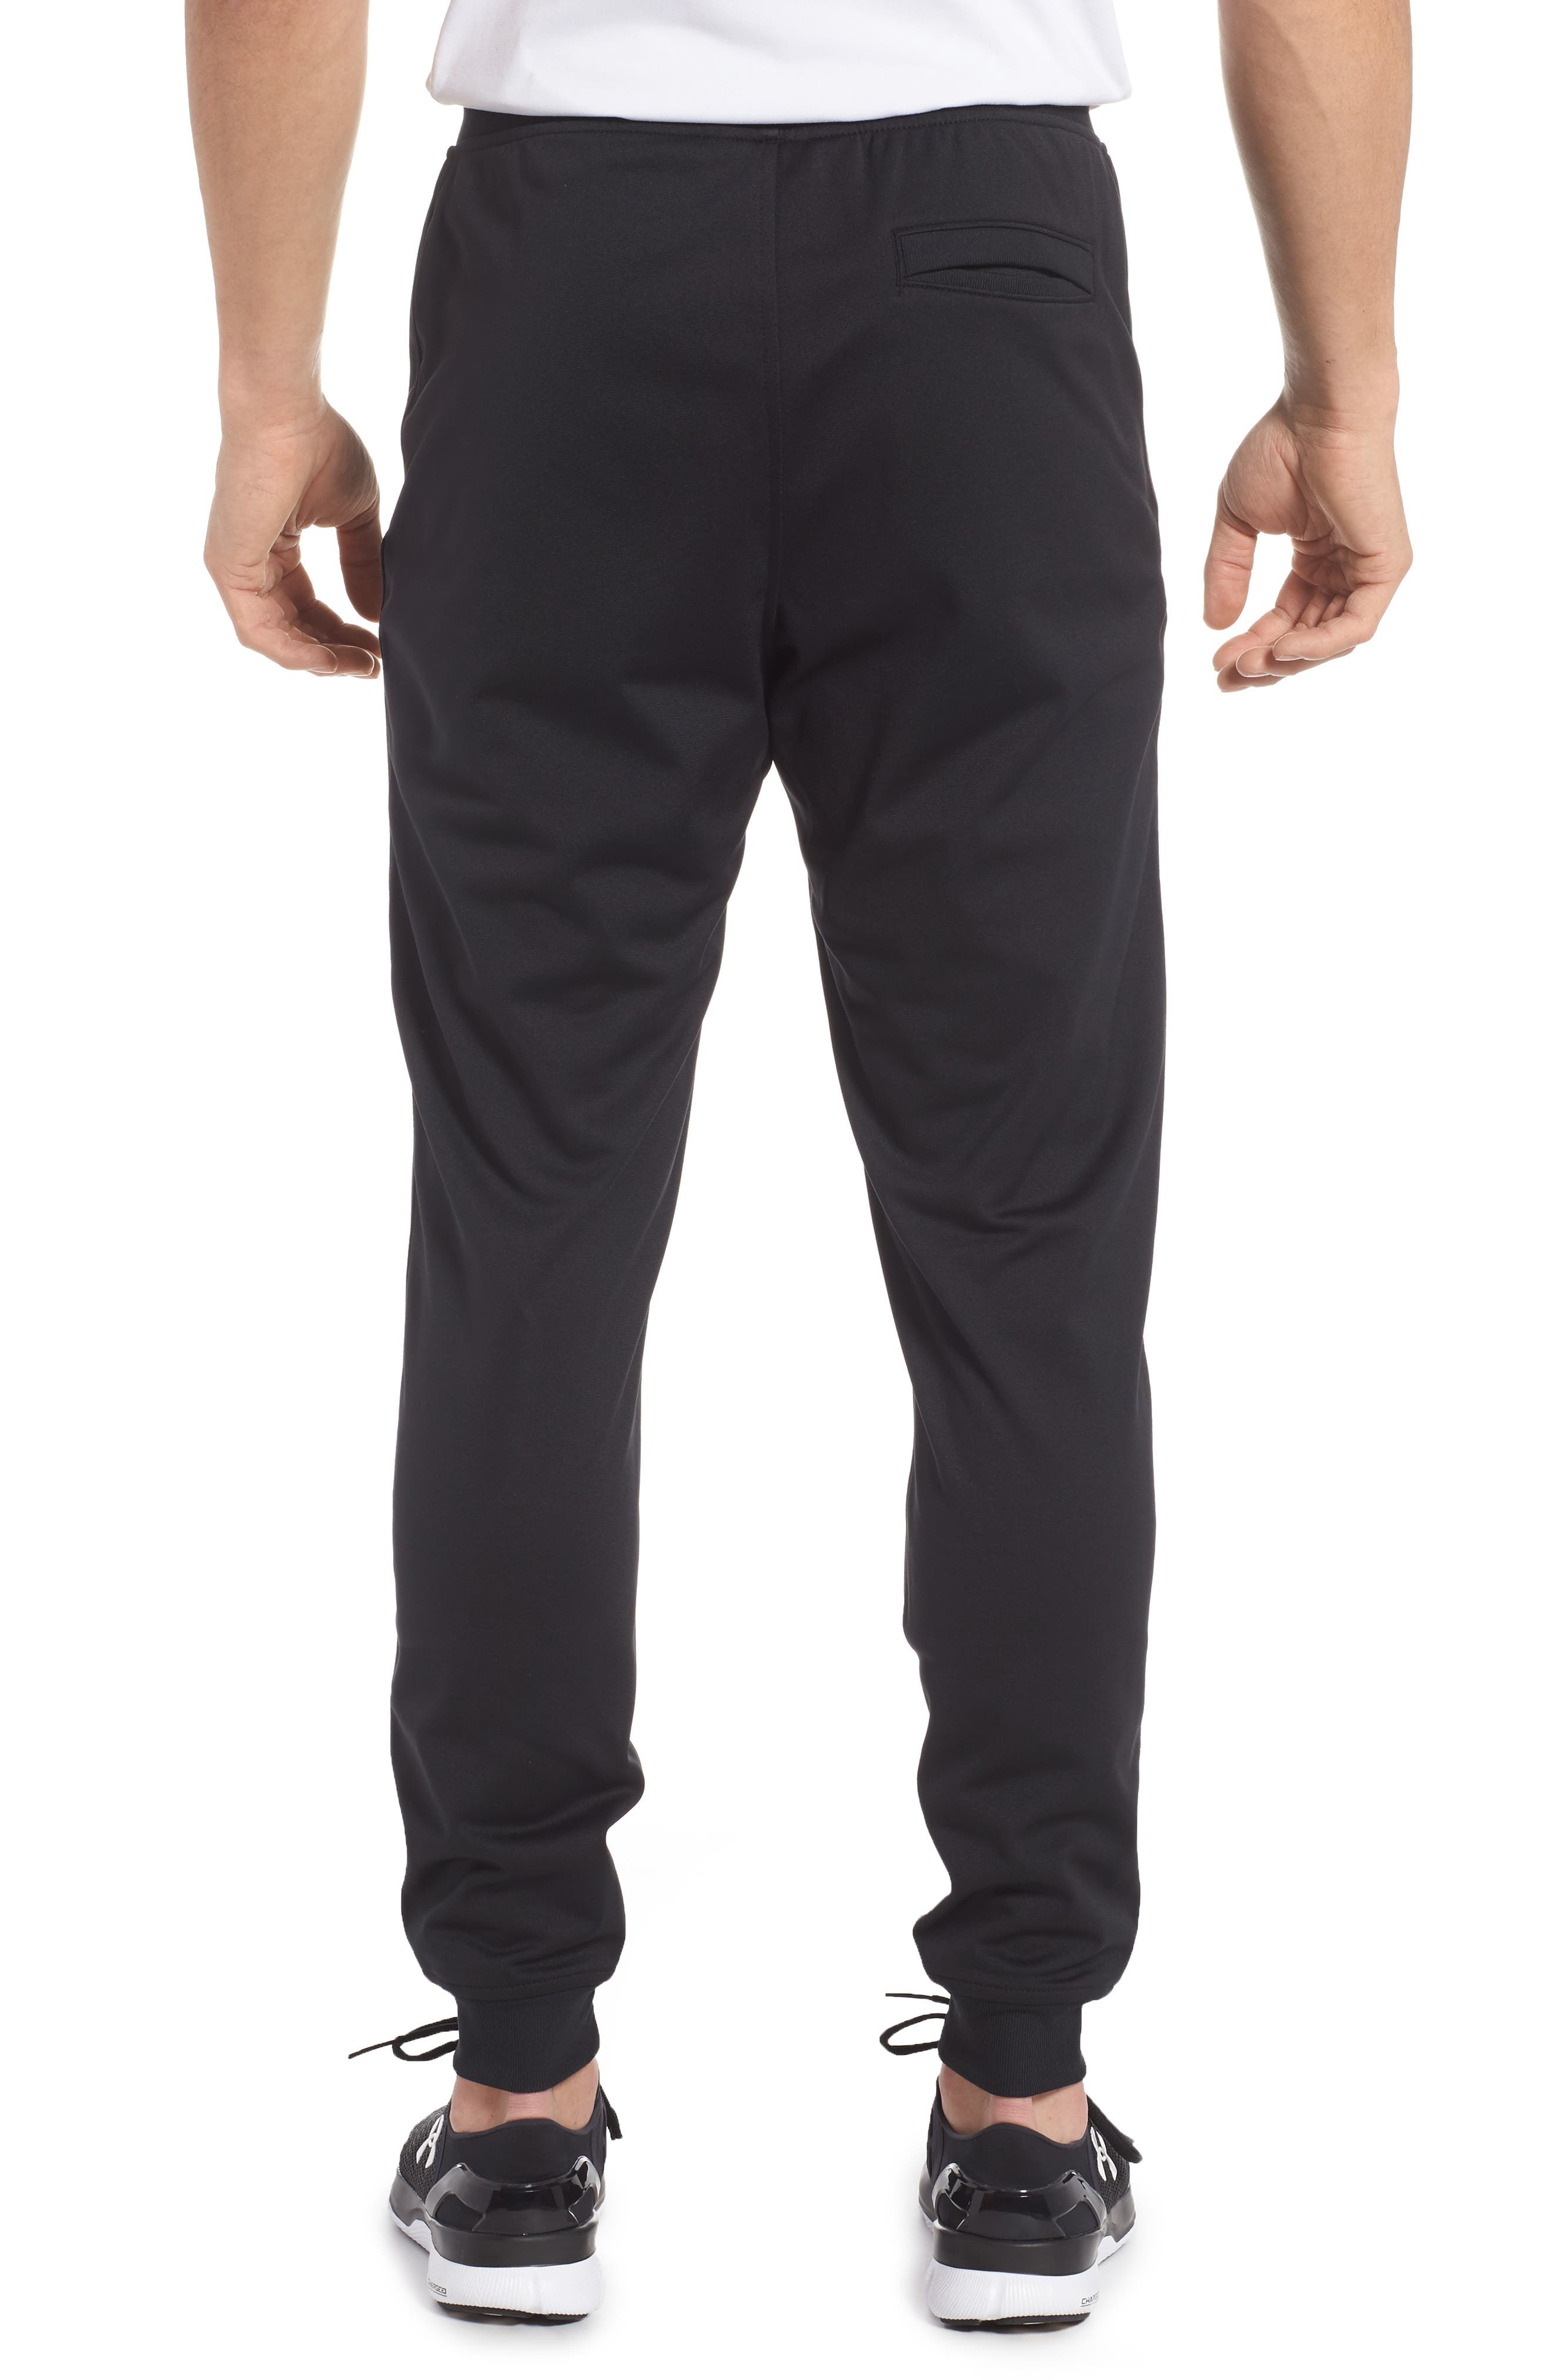 Sportstyle Knit Jogger Pants,                             Alternate thumbnail 2, color,                             Black/ White